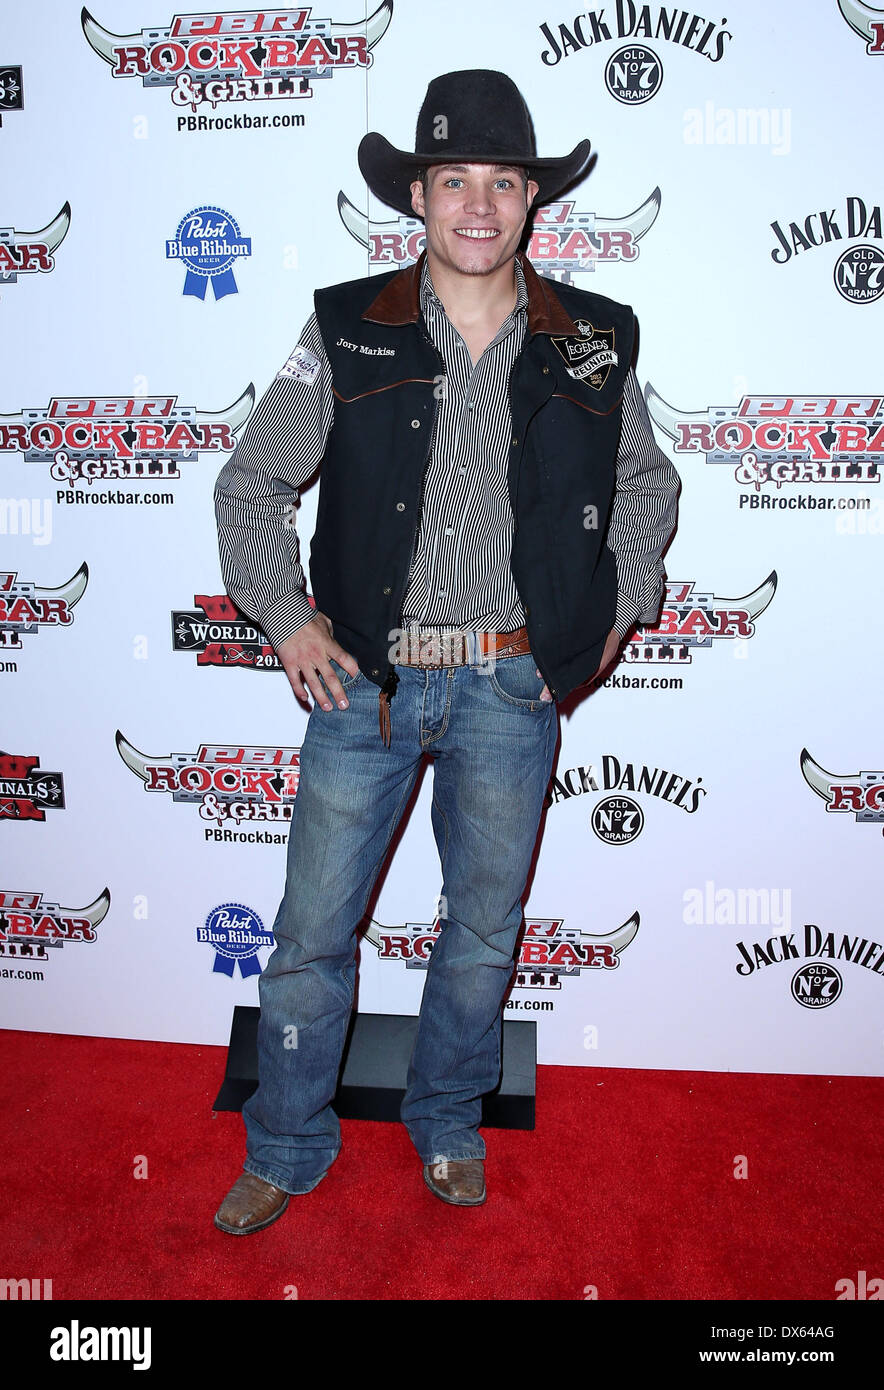 Jory Markiss Professional Bull Rider Superstars walk the red carpet at PBR Rock Bar inside The Miracle Mile Shops at Planet Hollywood Resort and Casino Las Vegas, Nevada - 26.10.12 Featuring: Jory Markiss Where: United States When: 26 Oct 2012 - Stock Image